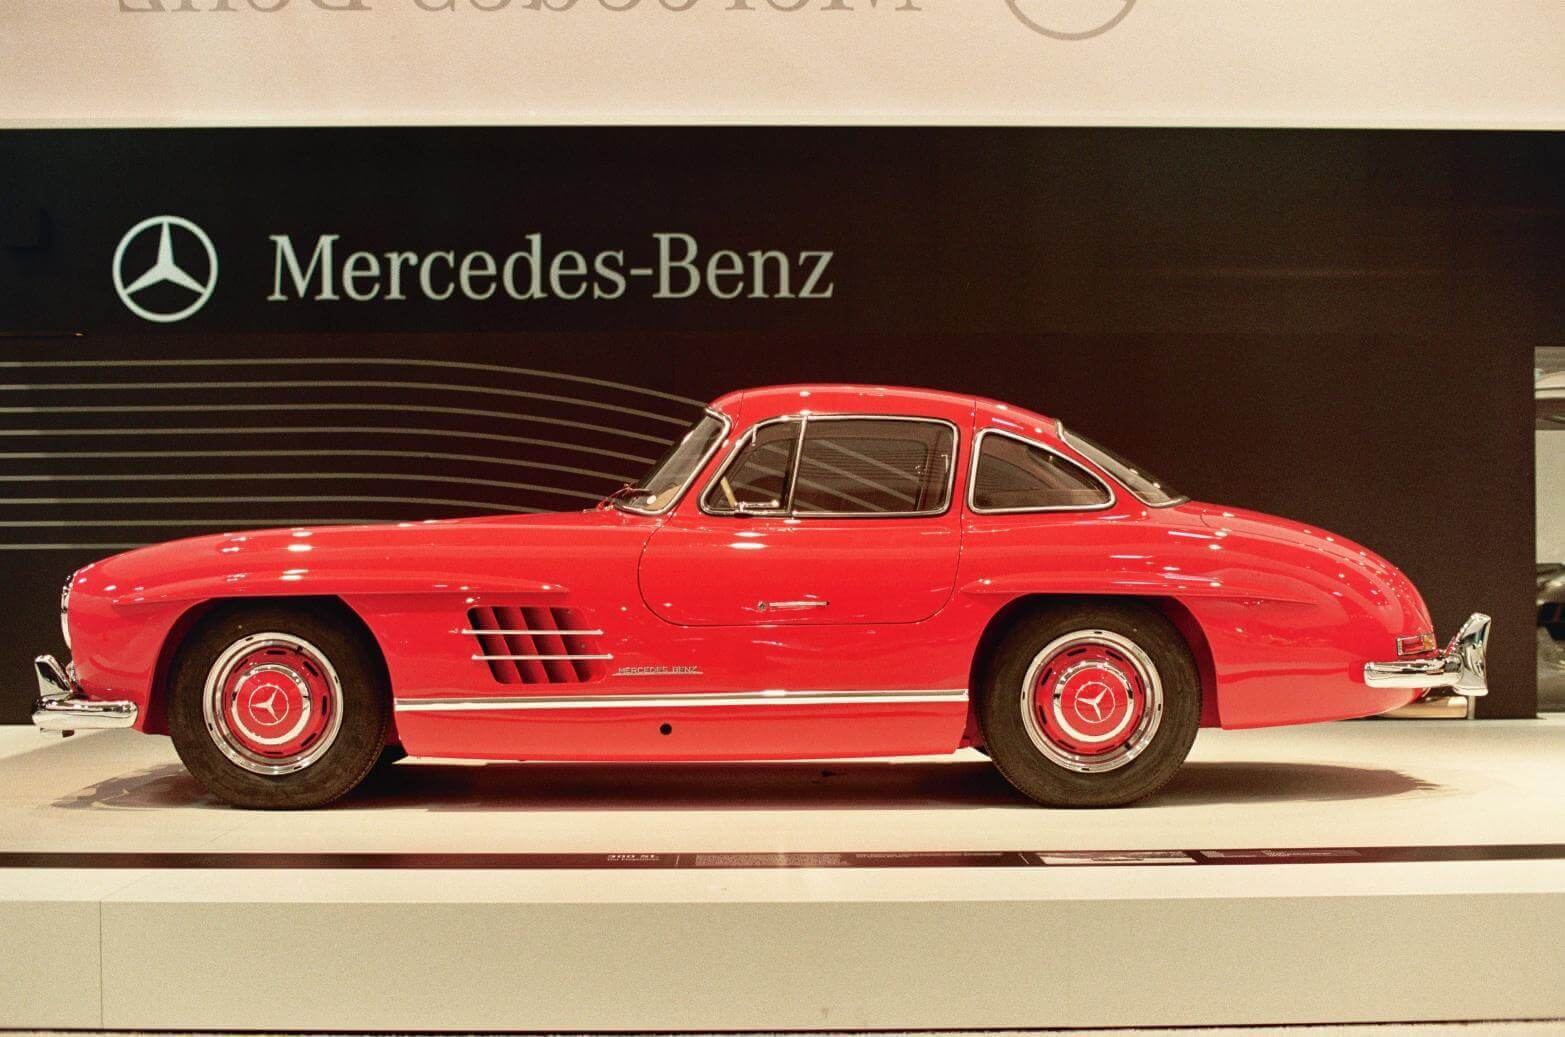 Mercedes classic cars soar in value